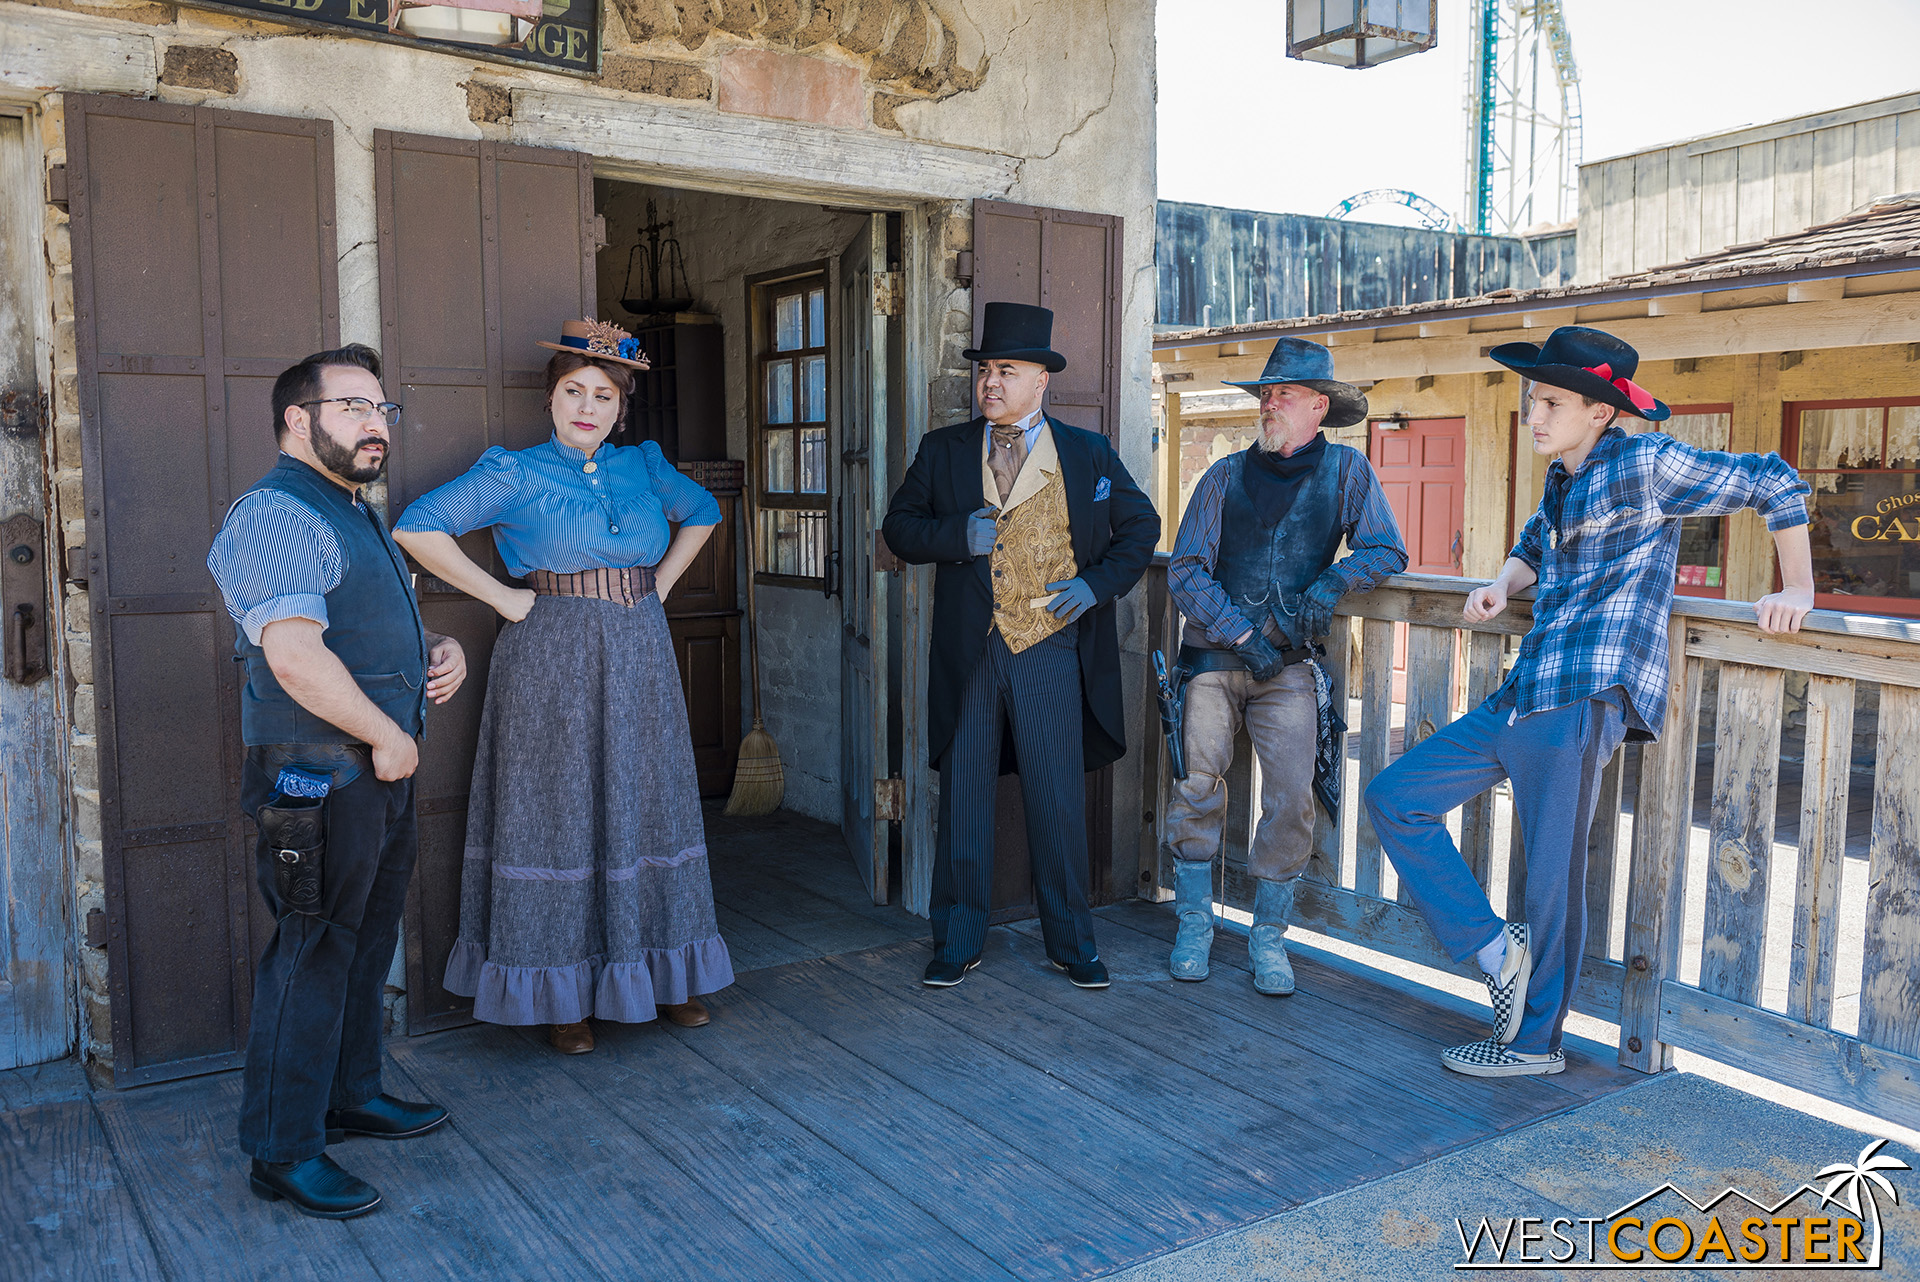 After the Cavalry takes the chest away to guard it by the Sheriff's Office, the Citizens discuss what just occurred.  Something seems just a bit off, but if you can't trust the U.S. Government with your belongings, who can you trust?